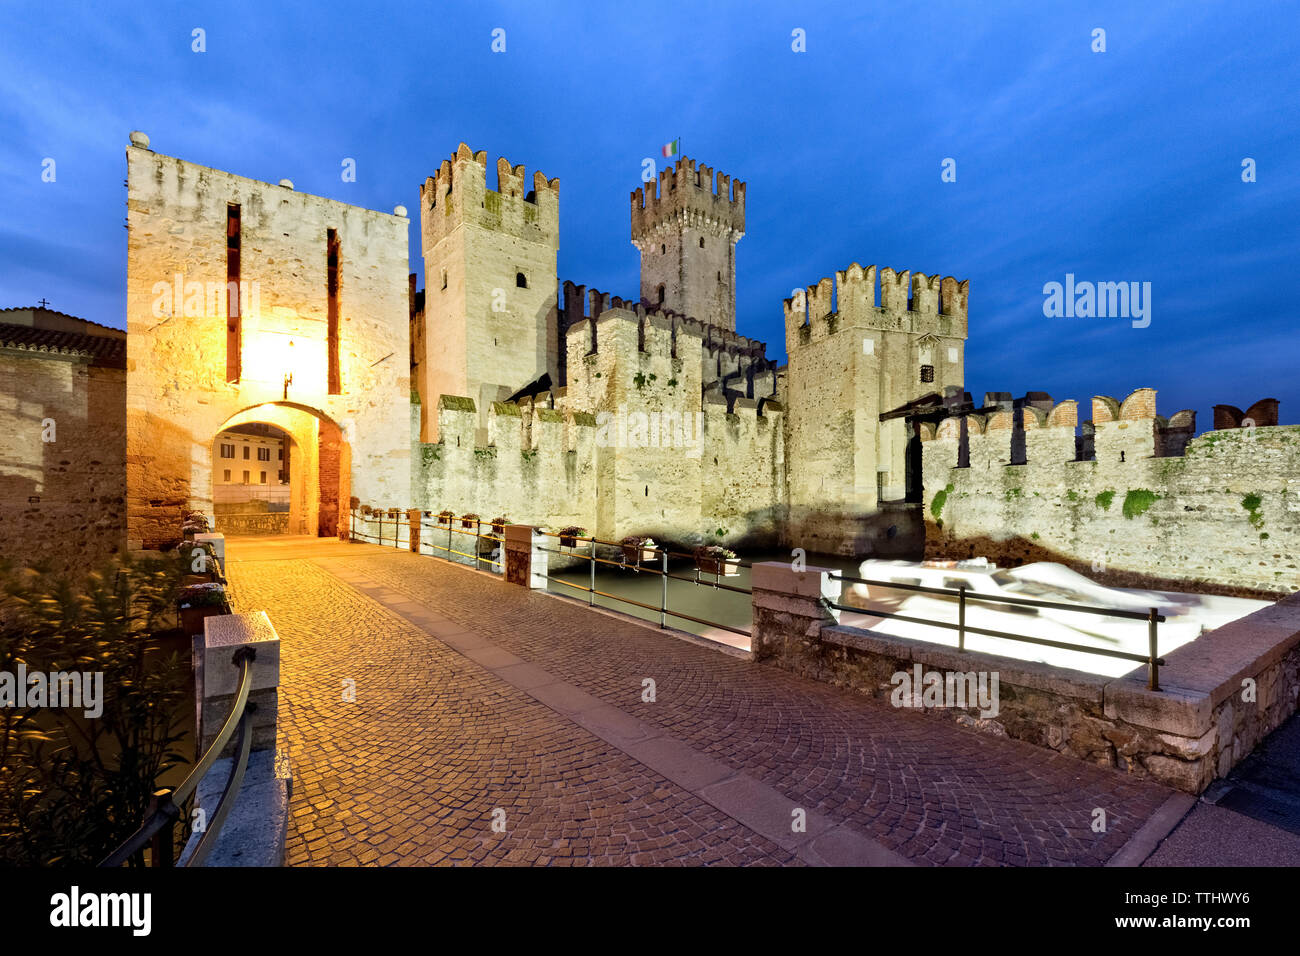 The gateway to the Scaligero castle in Sirmione. Lake Garda, Brescia province, Lombardy, Italy, Europe. Stock Photo